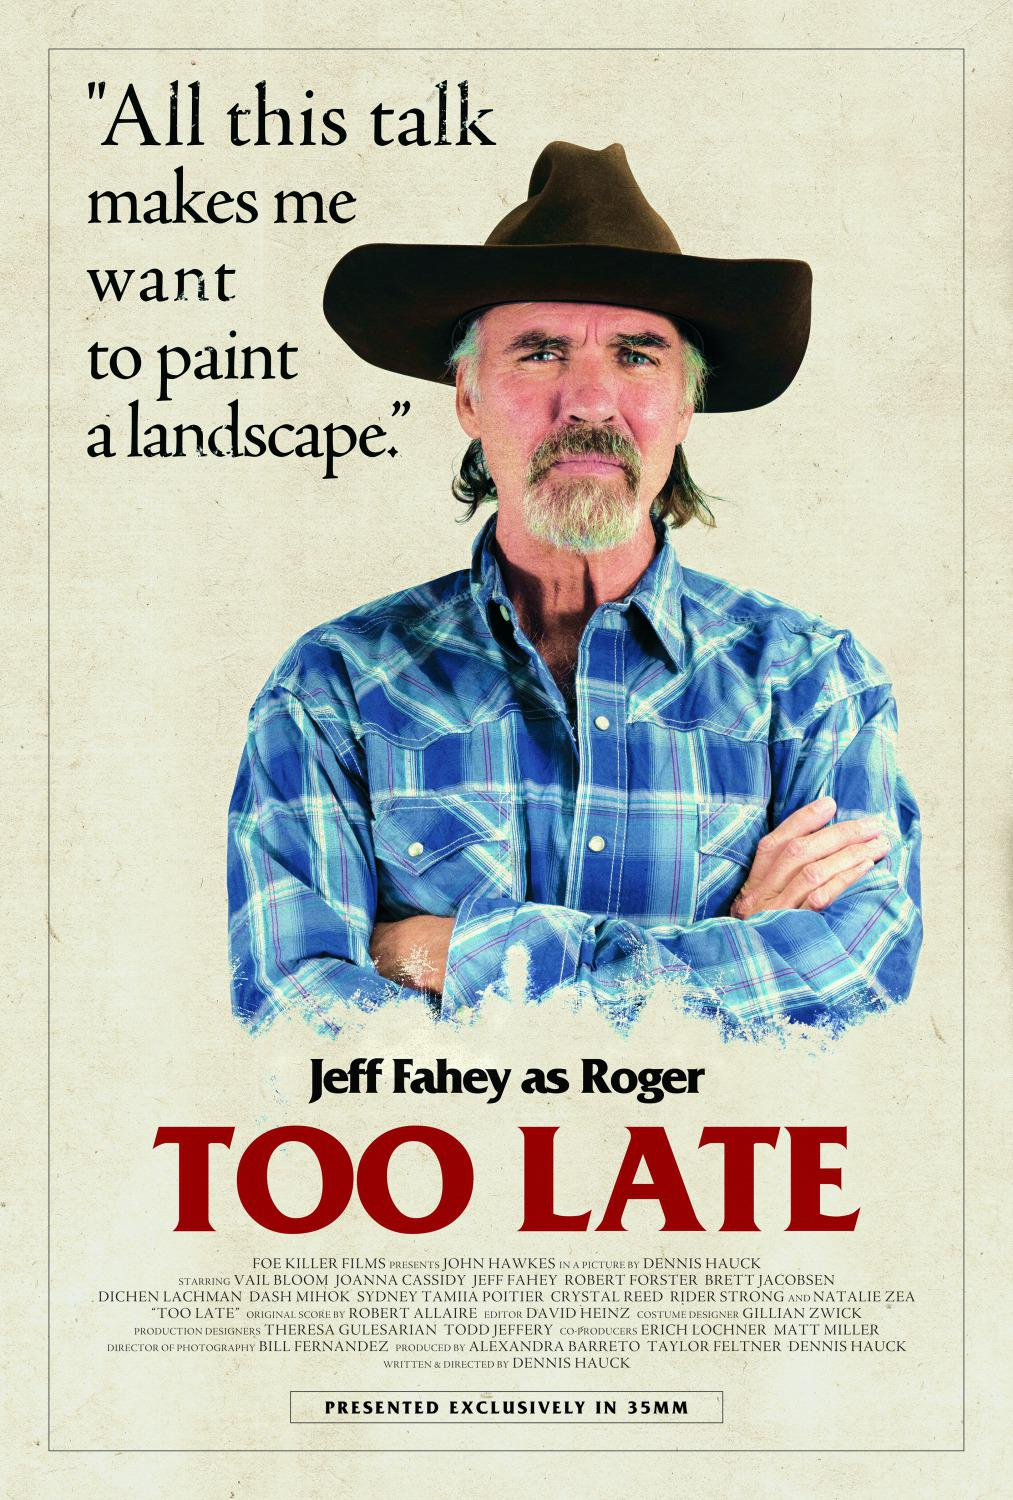 Troppo Tardi - Too Late - Jeff Fahey as Roger